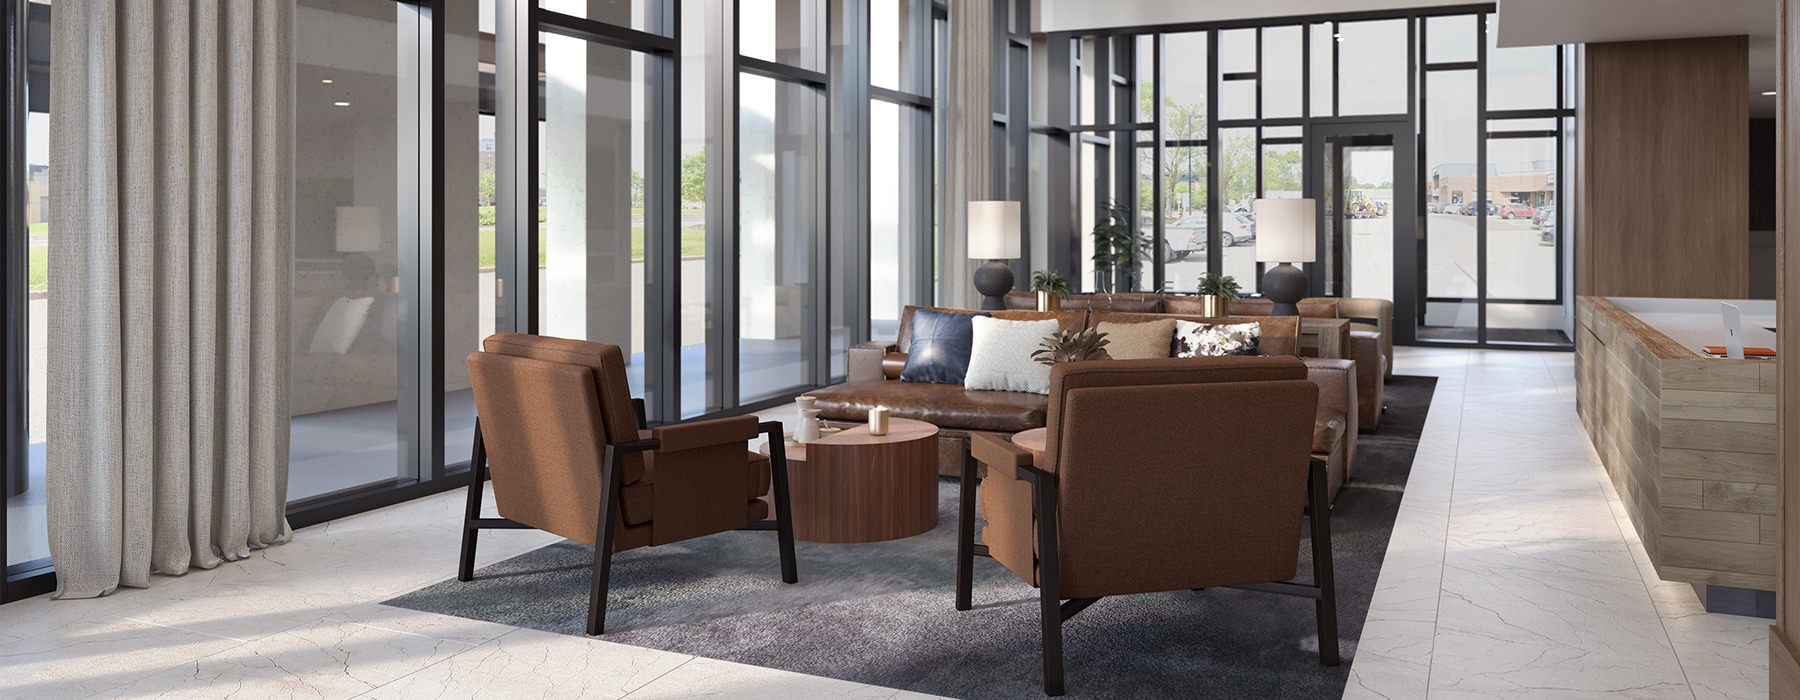 Spacious and well lti lobby with plenty of seating and room for entertaining.